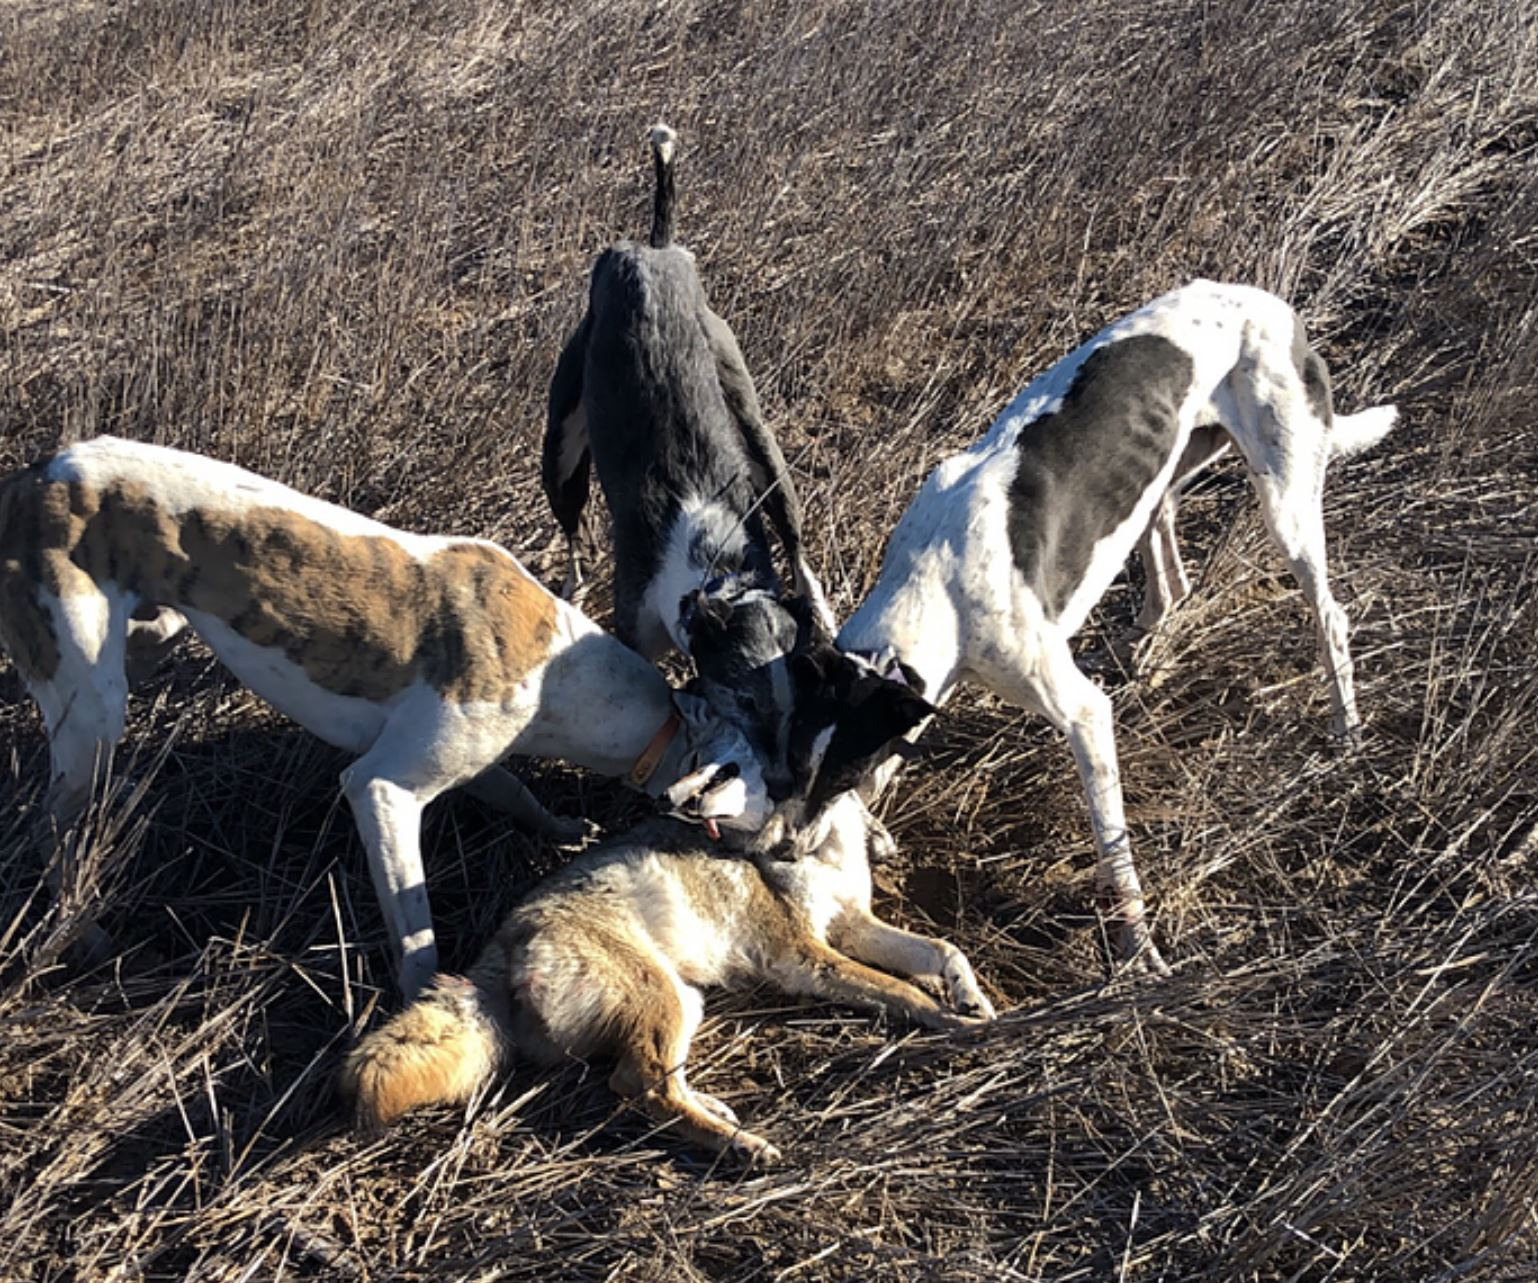 coyote-hunting-with-greyhounds-15653170051281166030